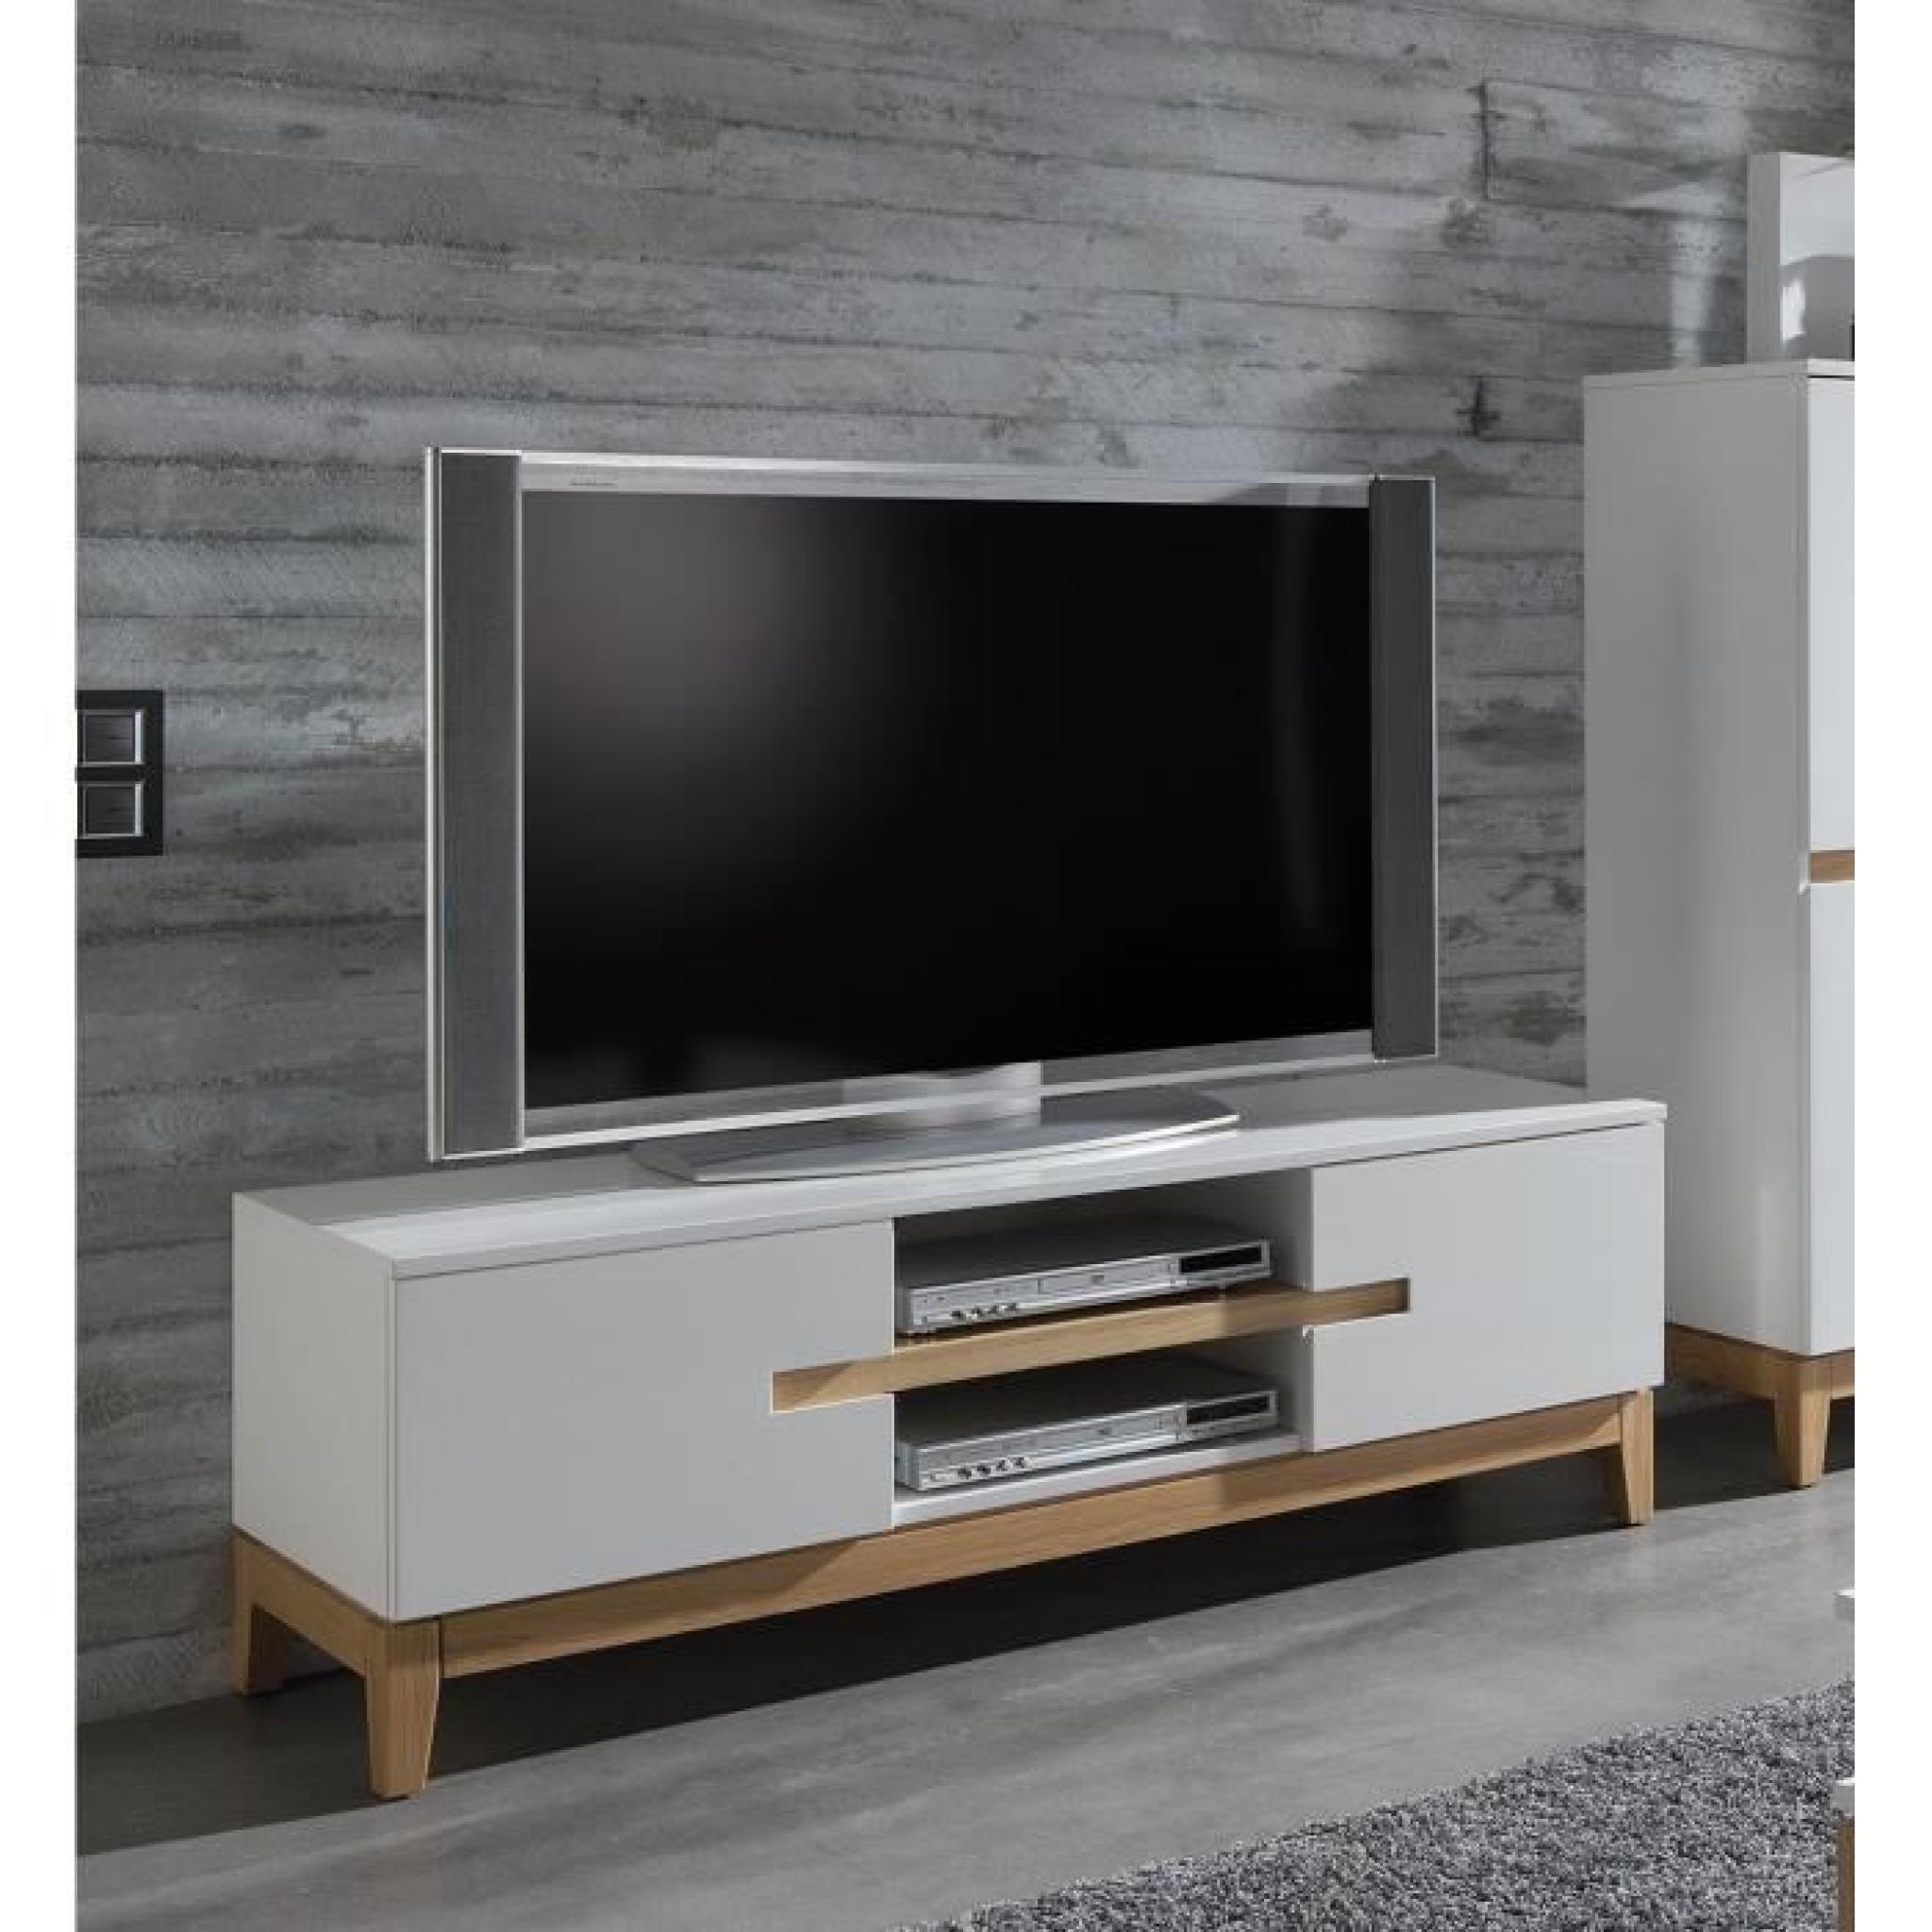 banc tv design paolo atylia couleur ch ne blanc achat vente meuble tv pas cher couleur et. Black Bedroom Furniture Sets. Home Design Ideas